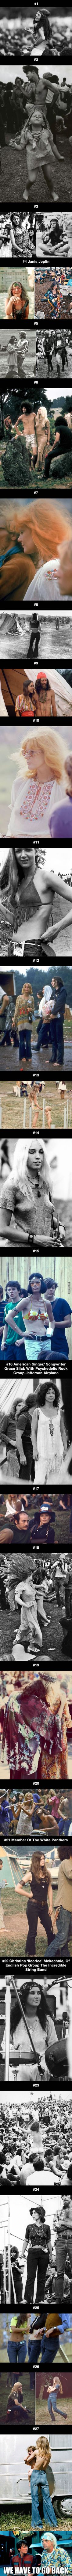 Girls from Woodstock, 1969. Great Scott, we have to go back. - 9GAG